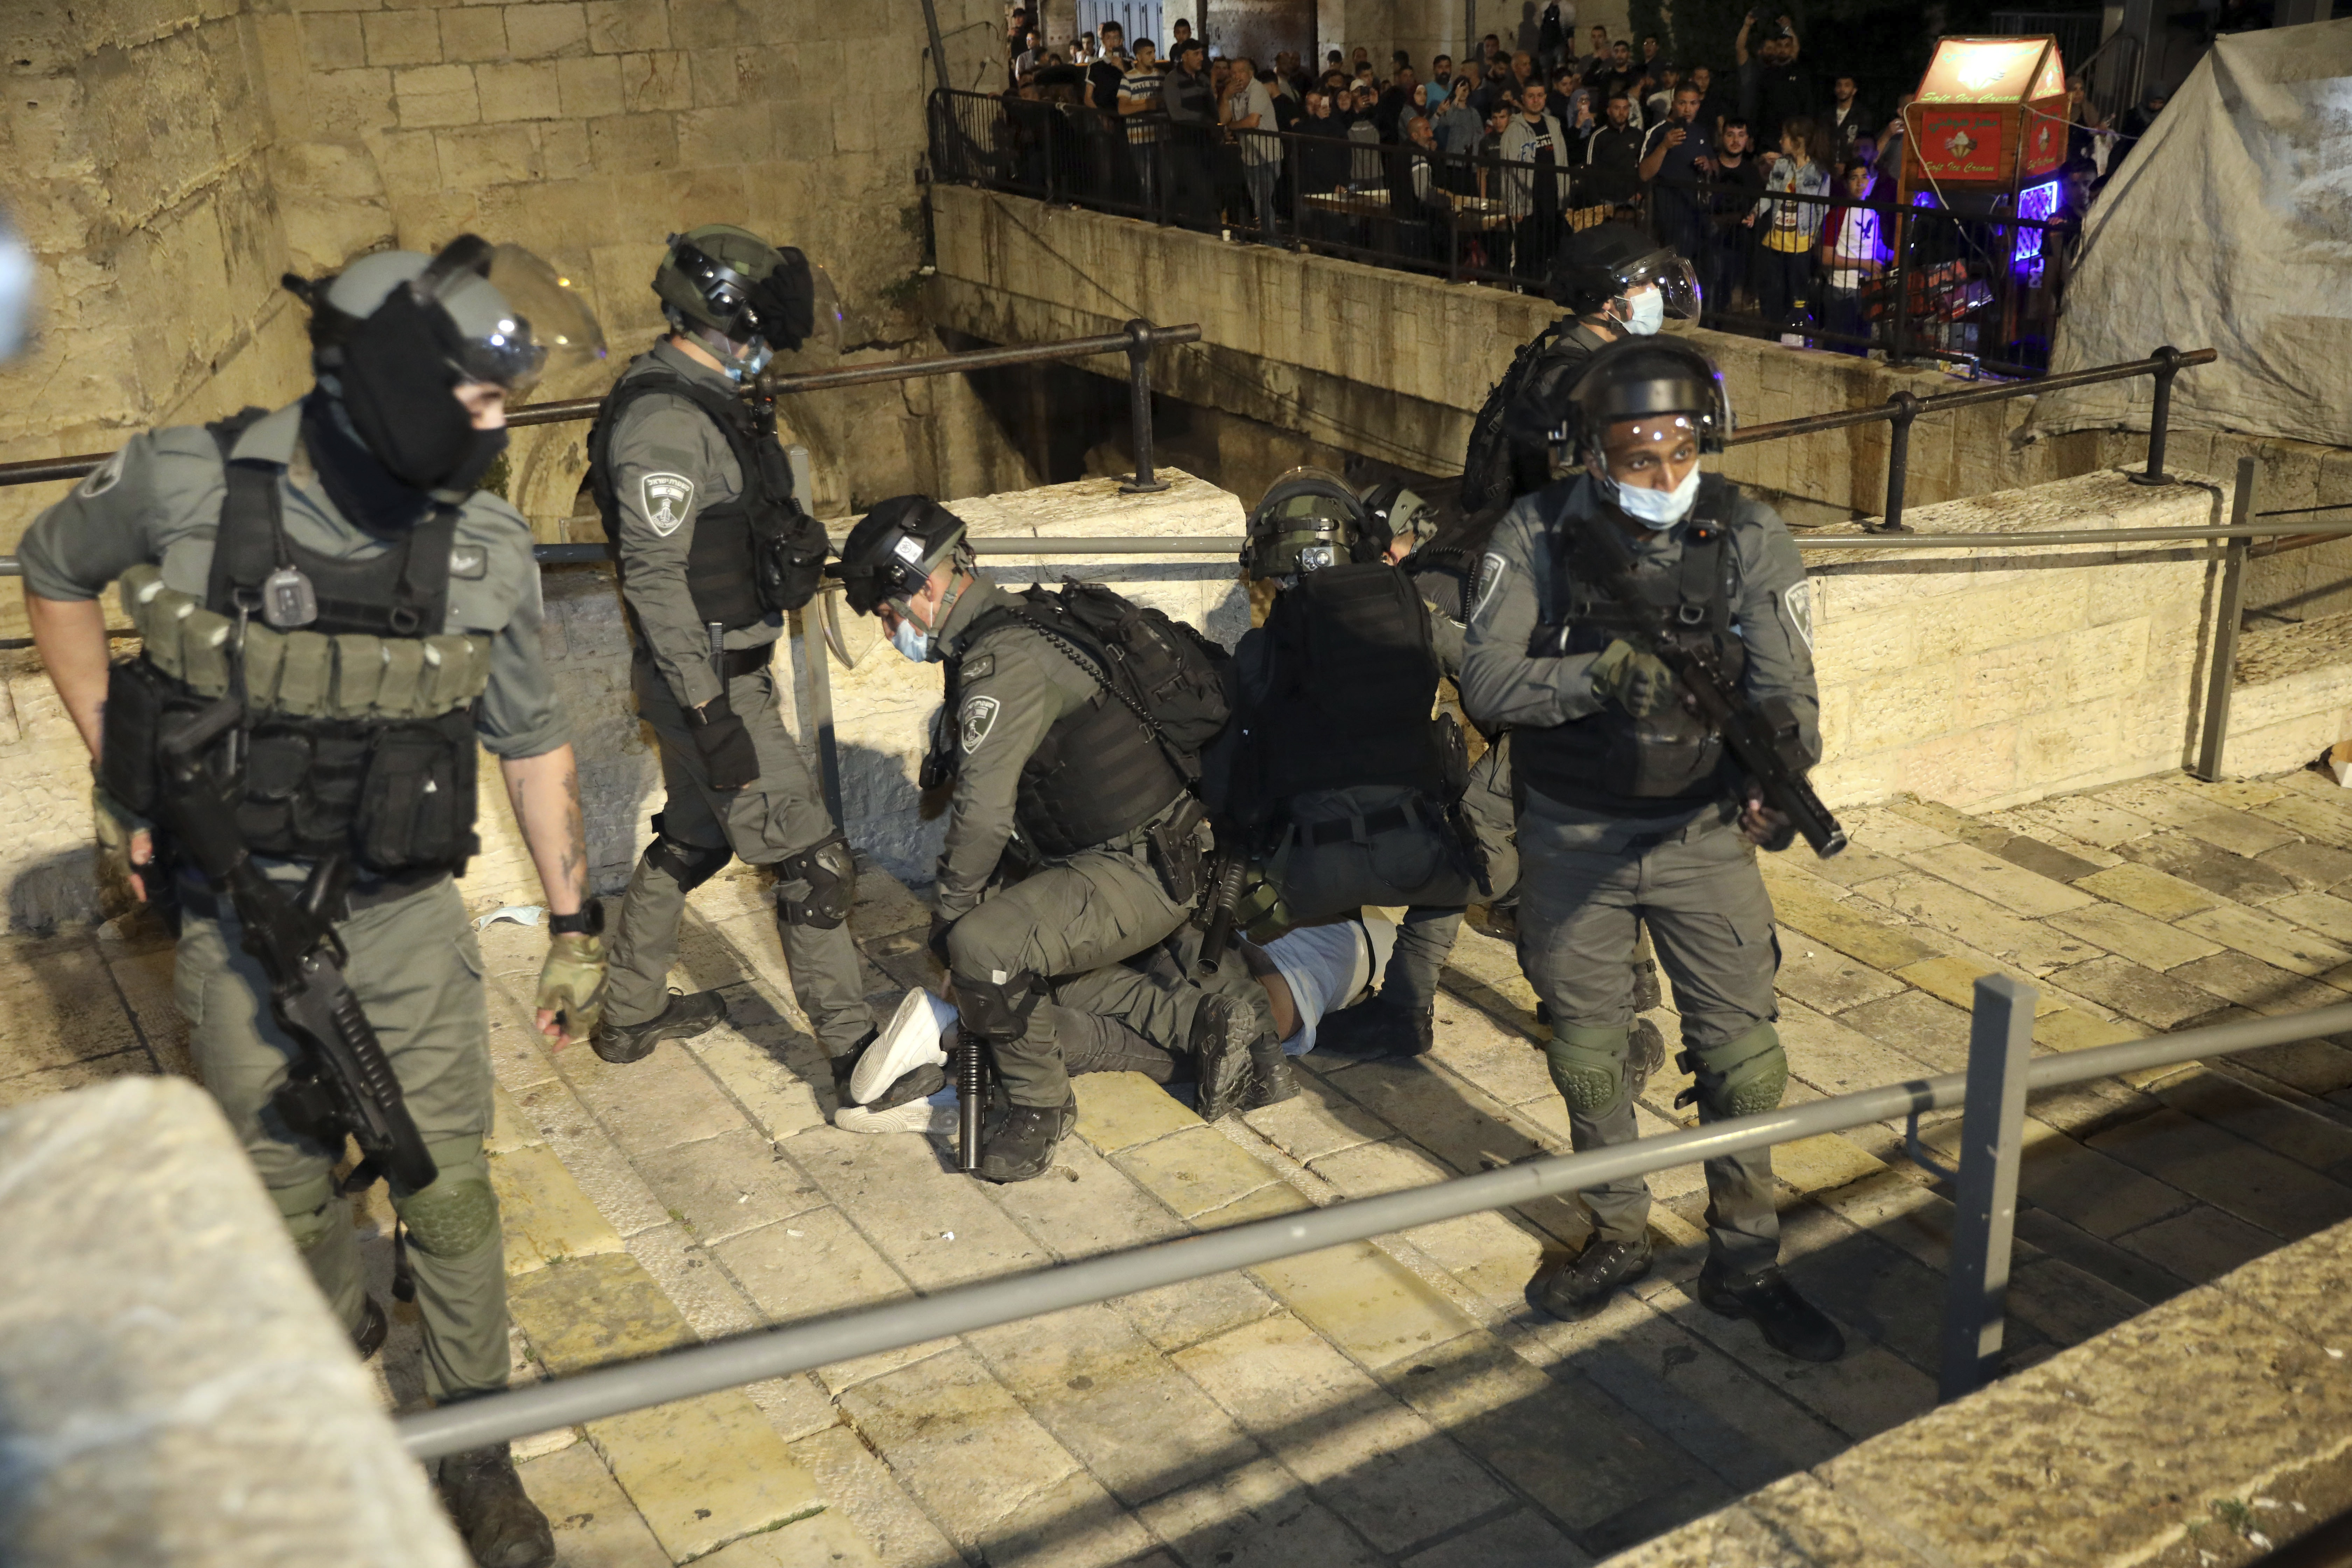 Israeli police forcibly detain a Palestinian outside of the Damascus Gate to the Old City of Jerusalem on Tuesday.